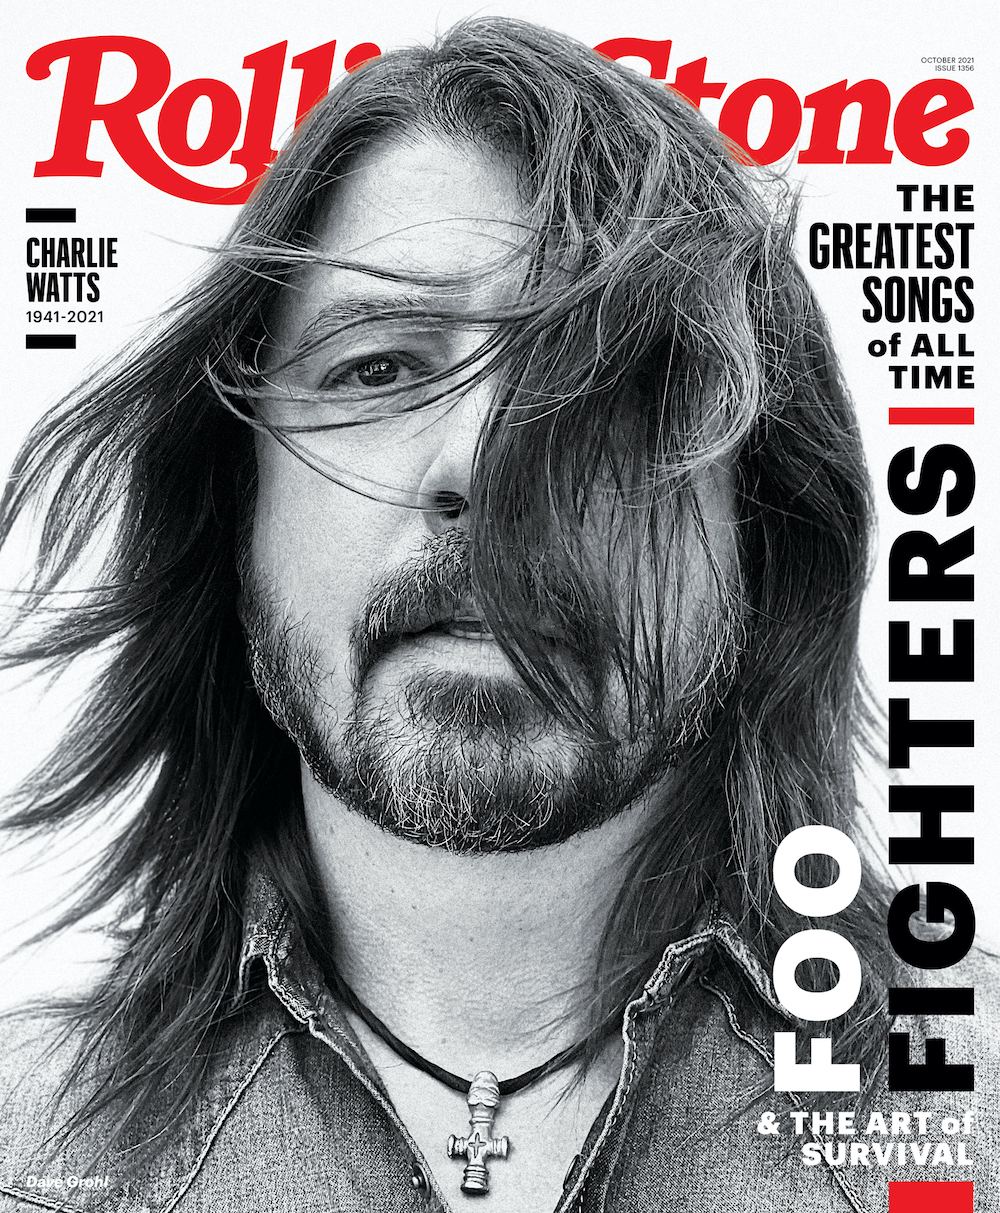 Dave Grohl Compares Songwriting Philosophy To Rivers Cuomo's, Recalls Almost Joining Gwar